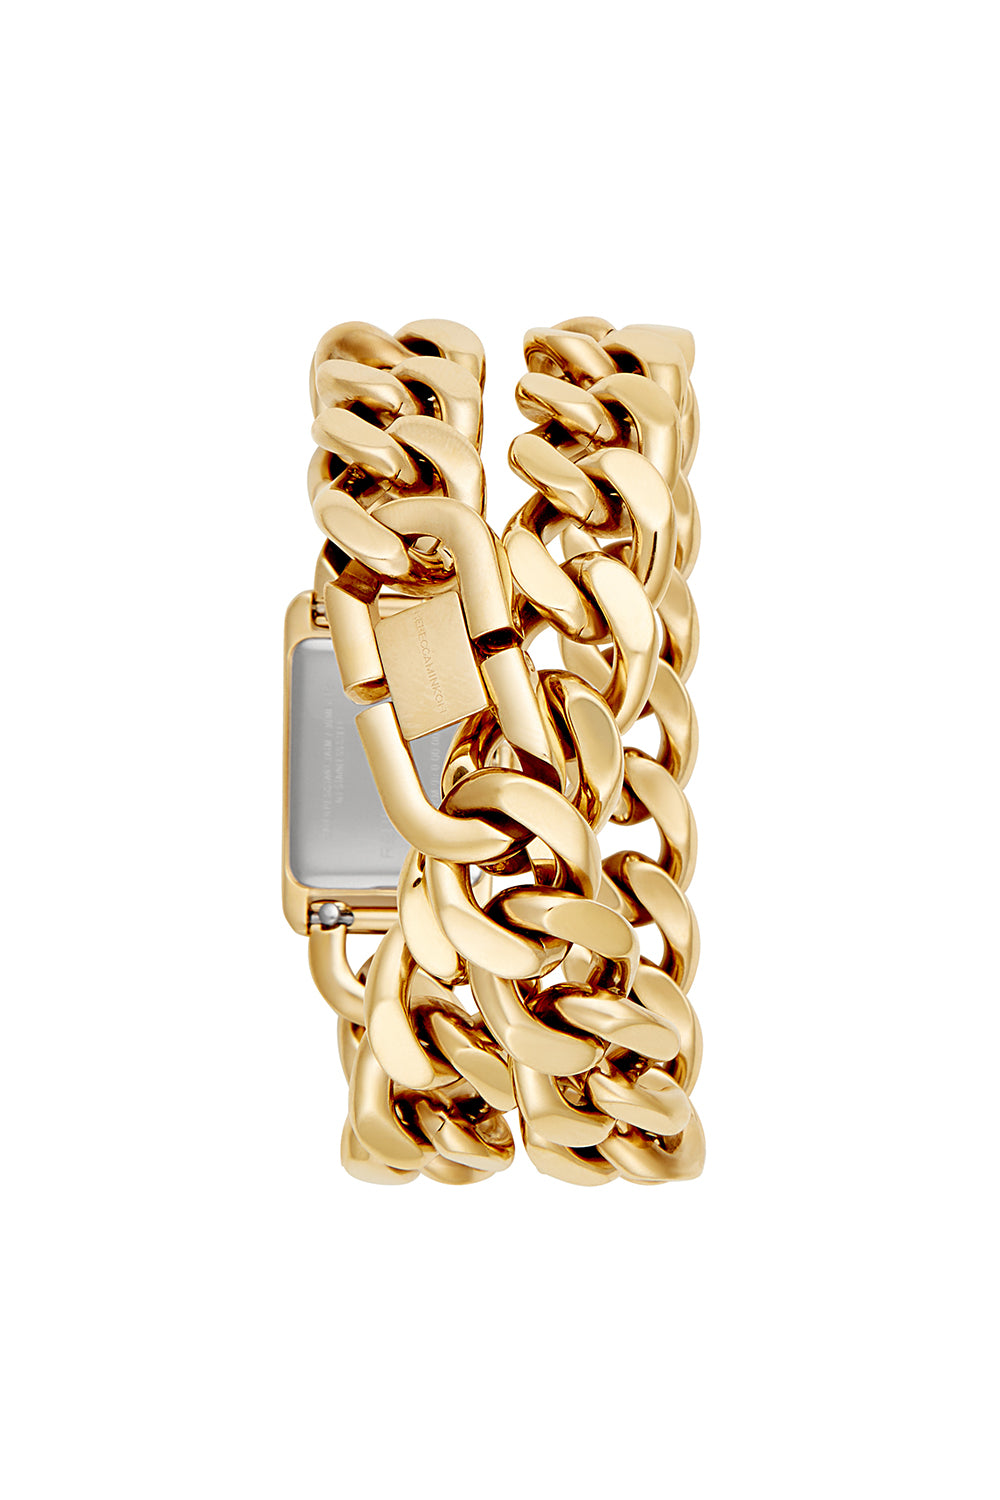 Moment Gold Tone Chain Bracelet Watch, 19x30MM